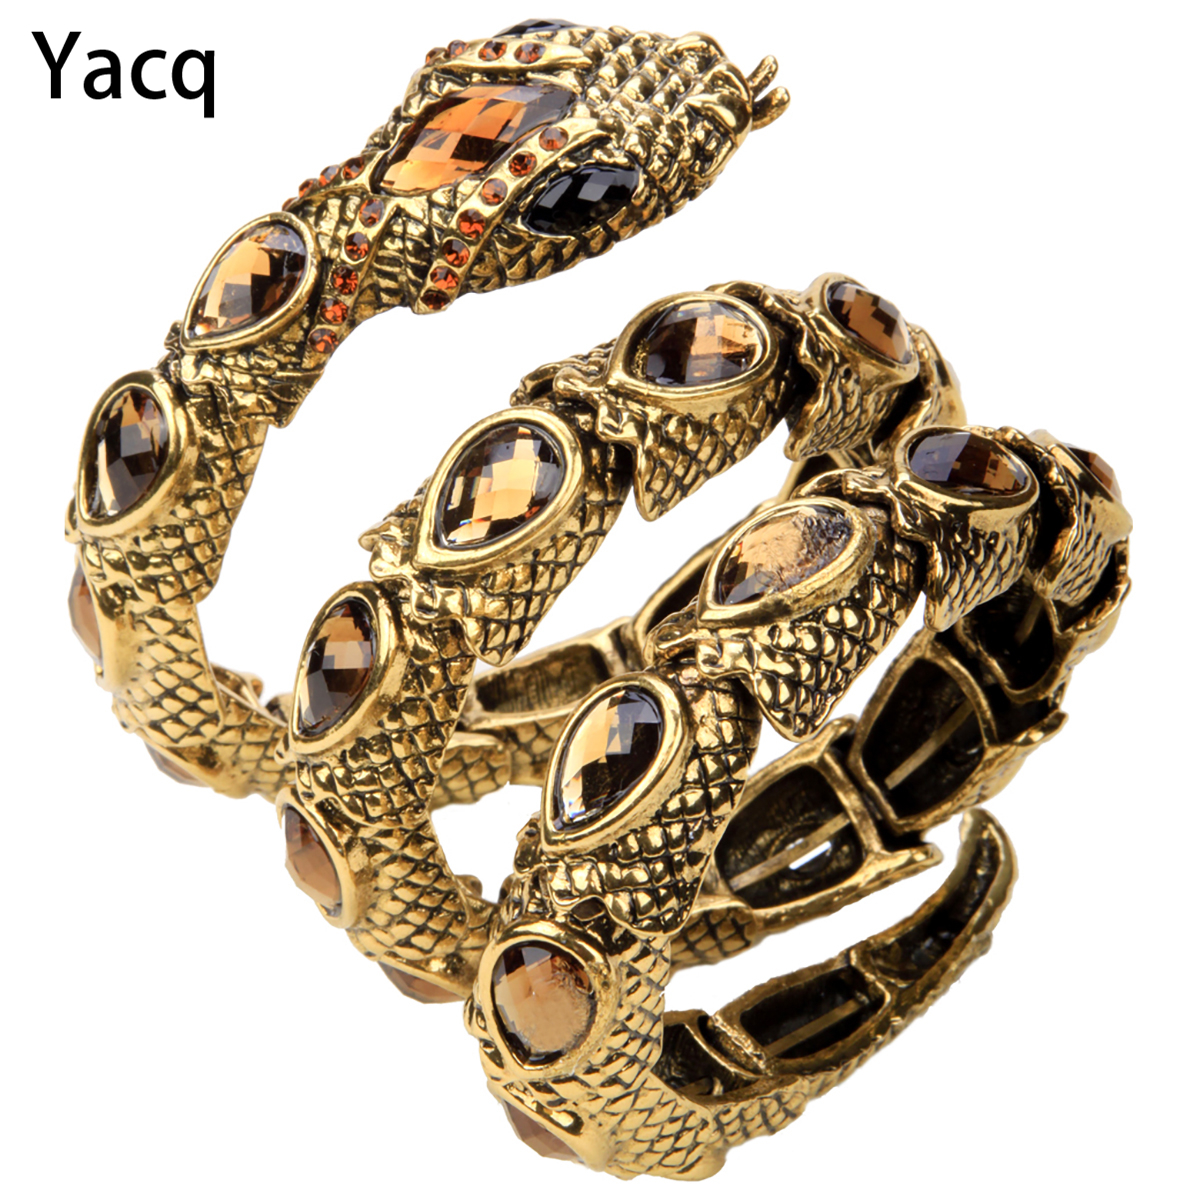 YACQ Stretch Snake Armband Armlet Övre Arm Manschett Kvinnor Punk Rock Crystal Bangle Smycken Guld Silver Färg Dropshipping A32